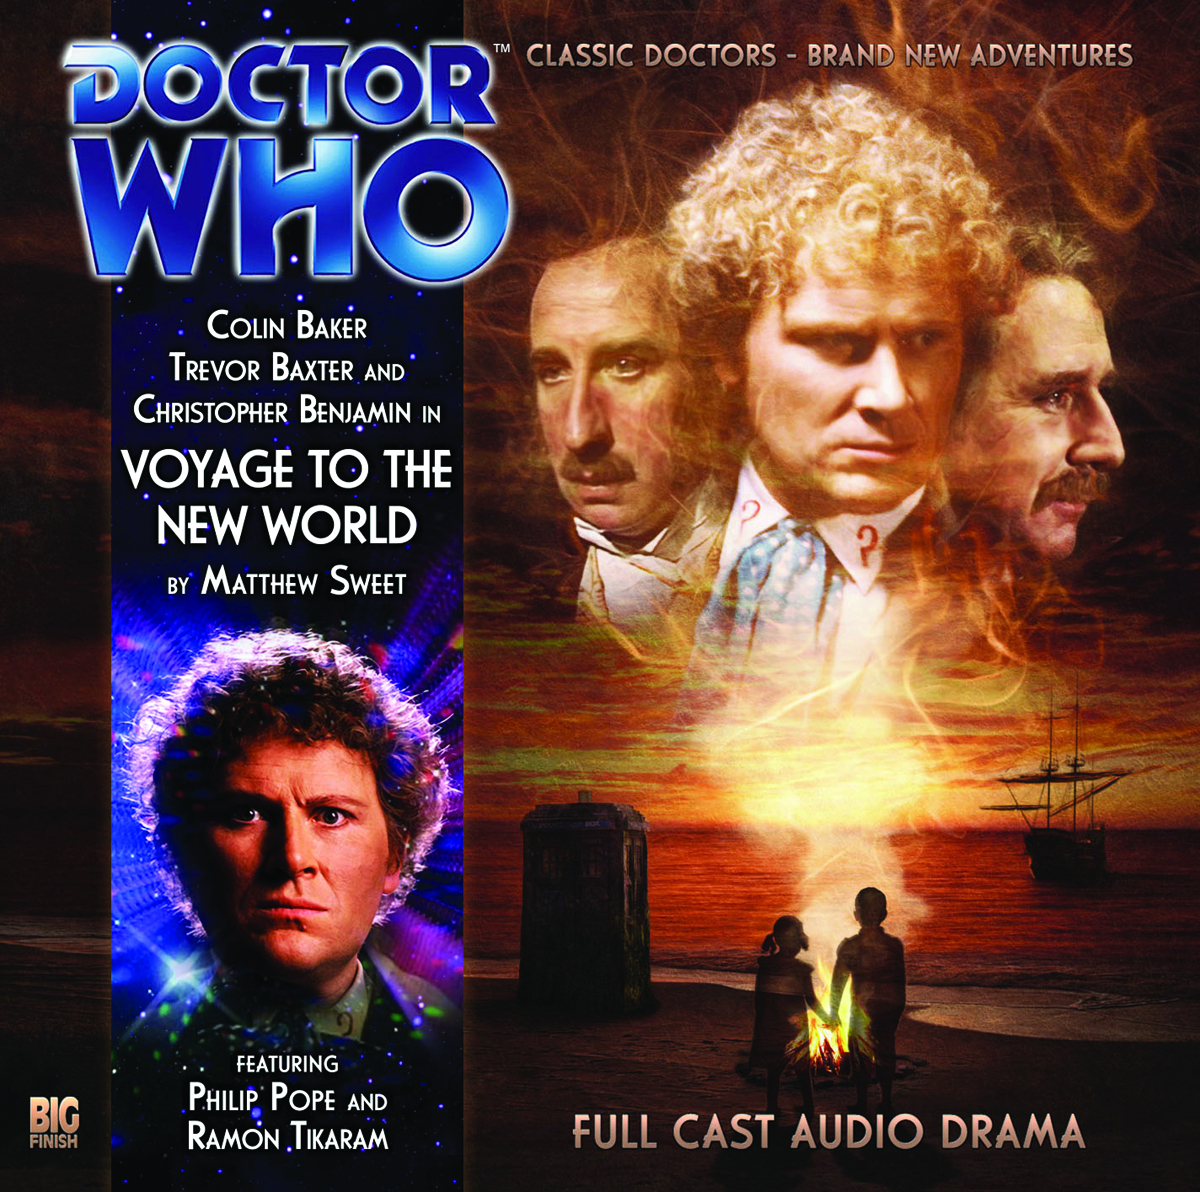 DOCTOR WHO VOYAGES TO NEW WORLD AUDIO CD